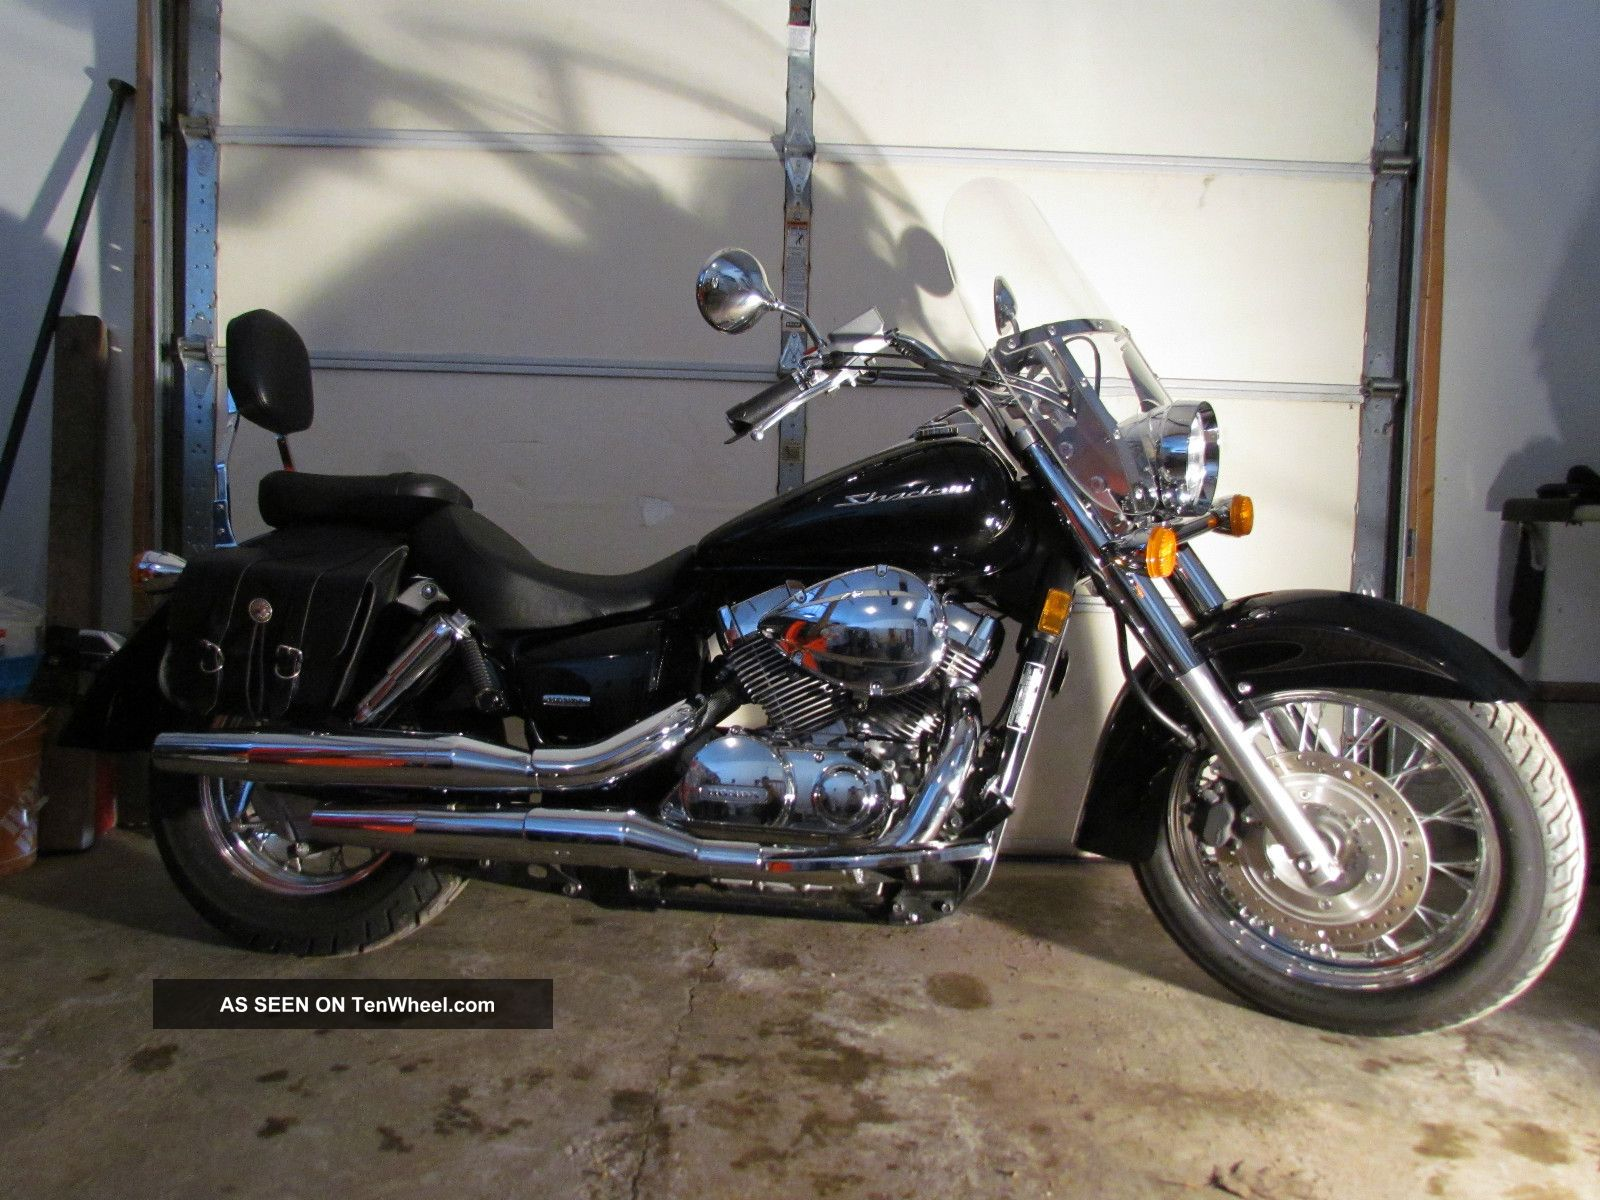 2009 Honda Shadow Vt750 Ca Black Shadow photo